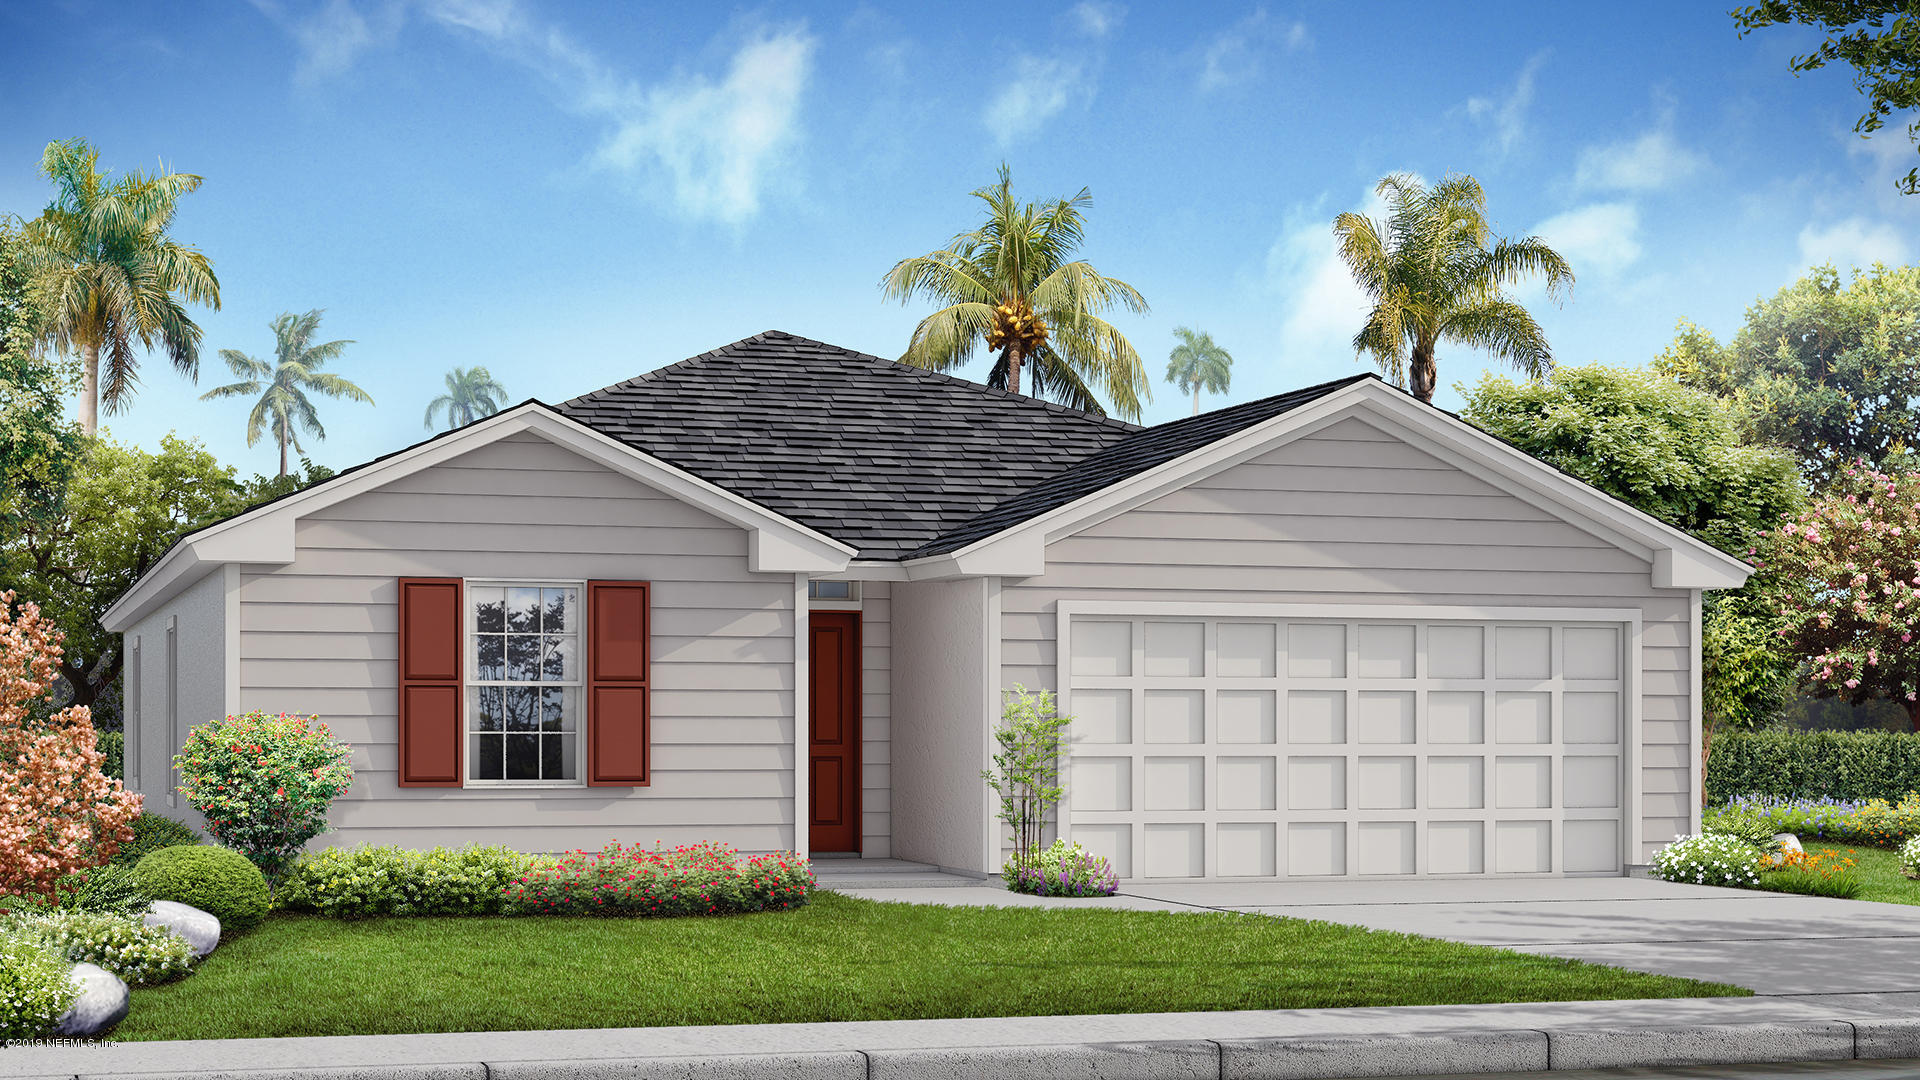 Photo of 2051 PEBBLE POINT, GREEN COVE SPRINGS, FL 32043